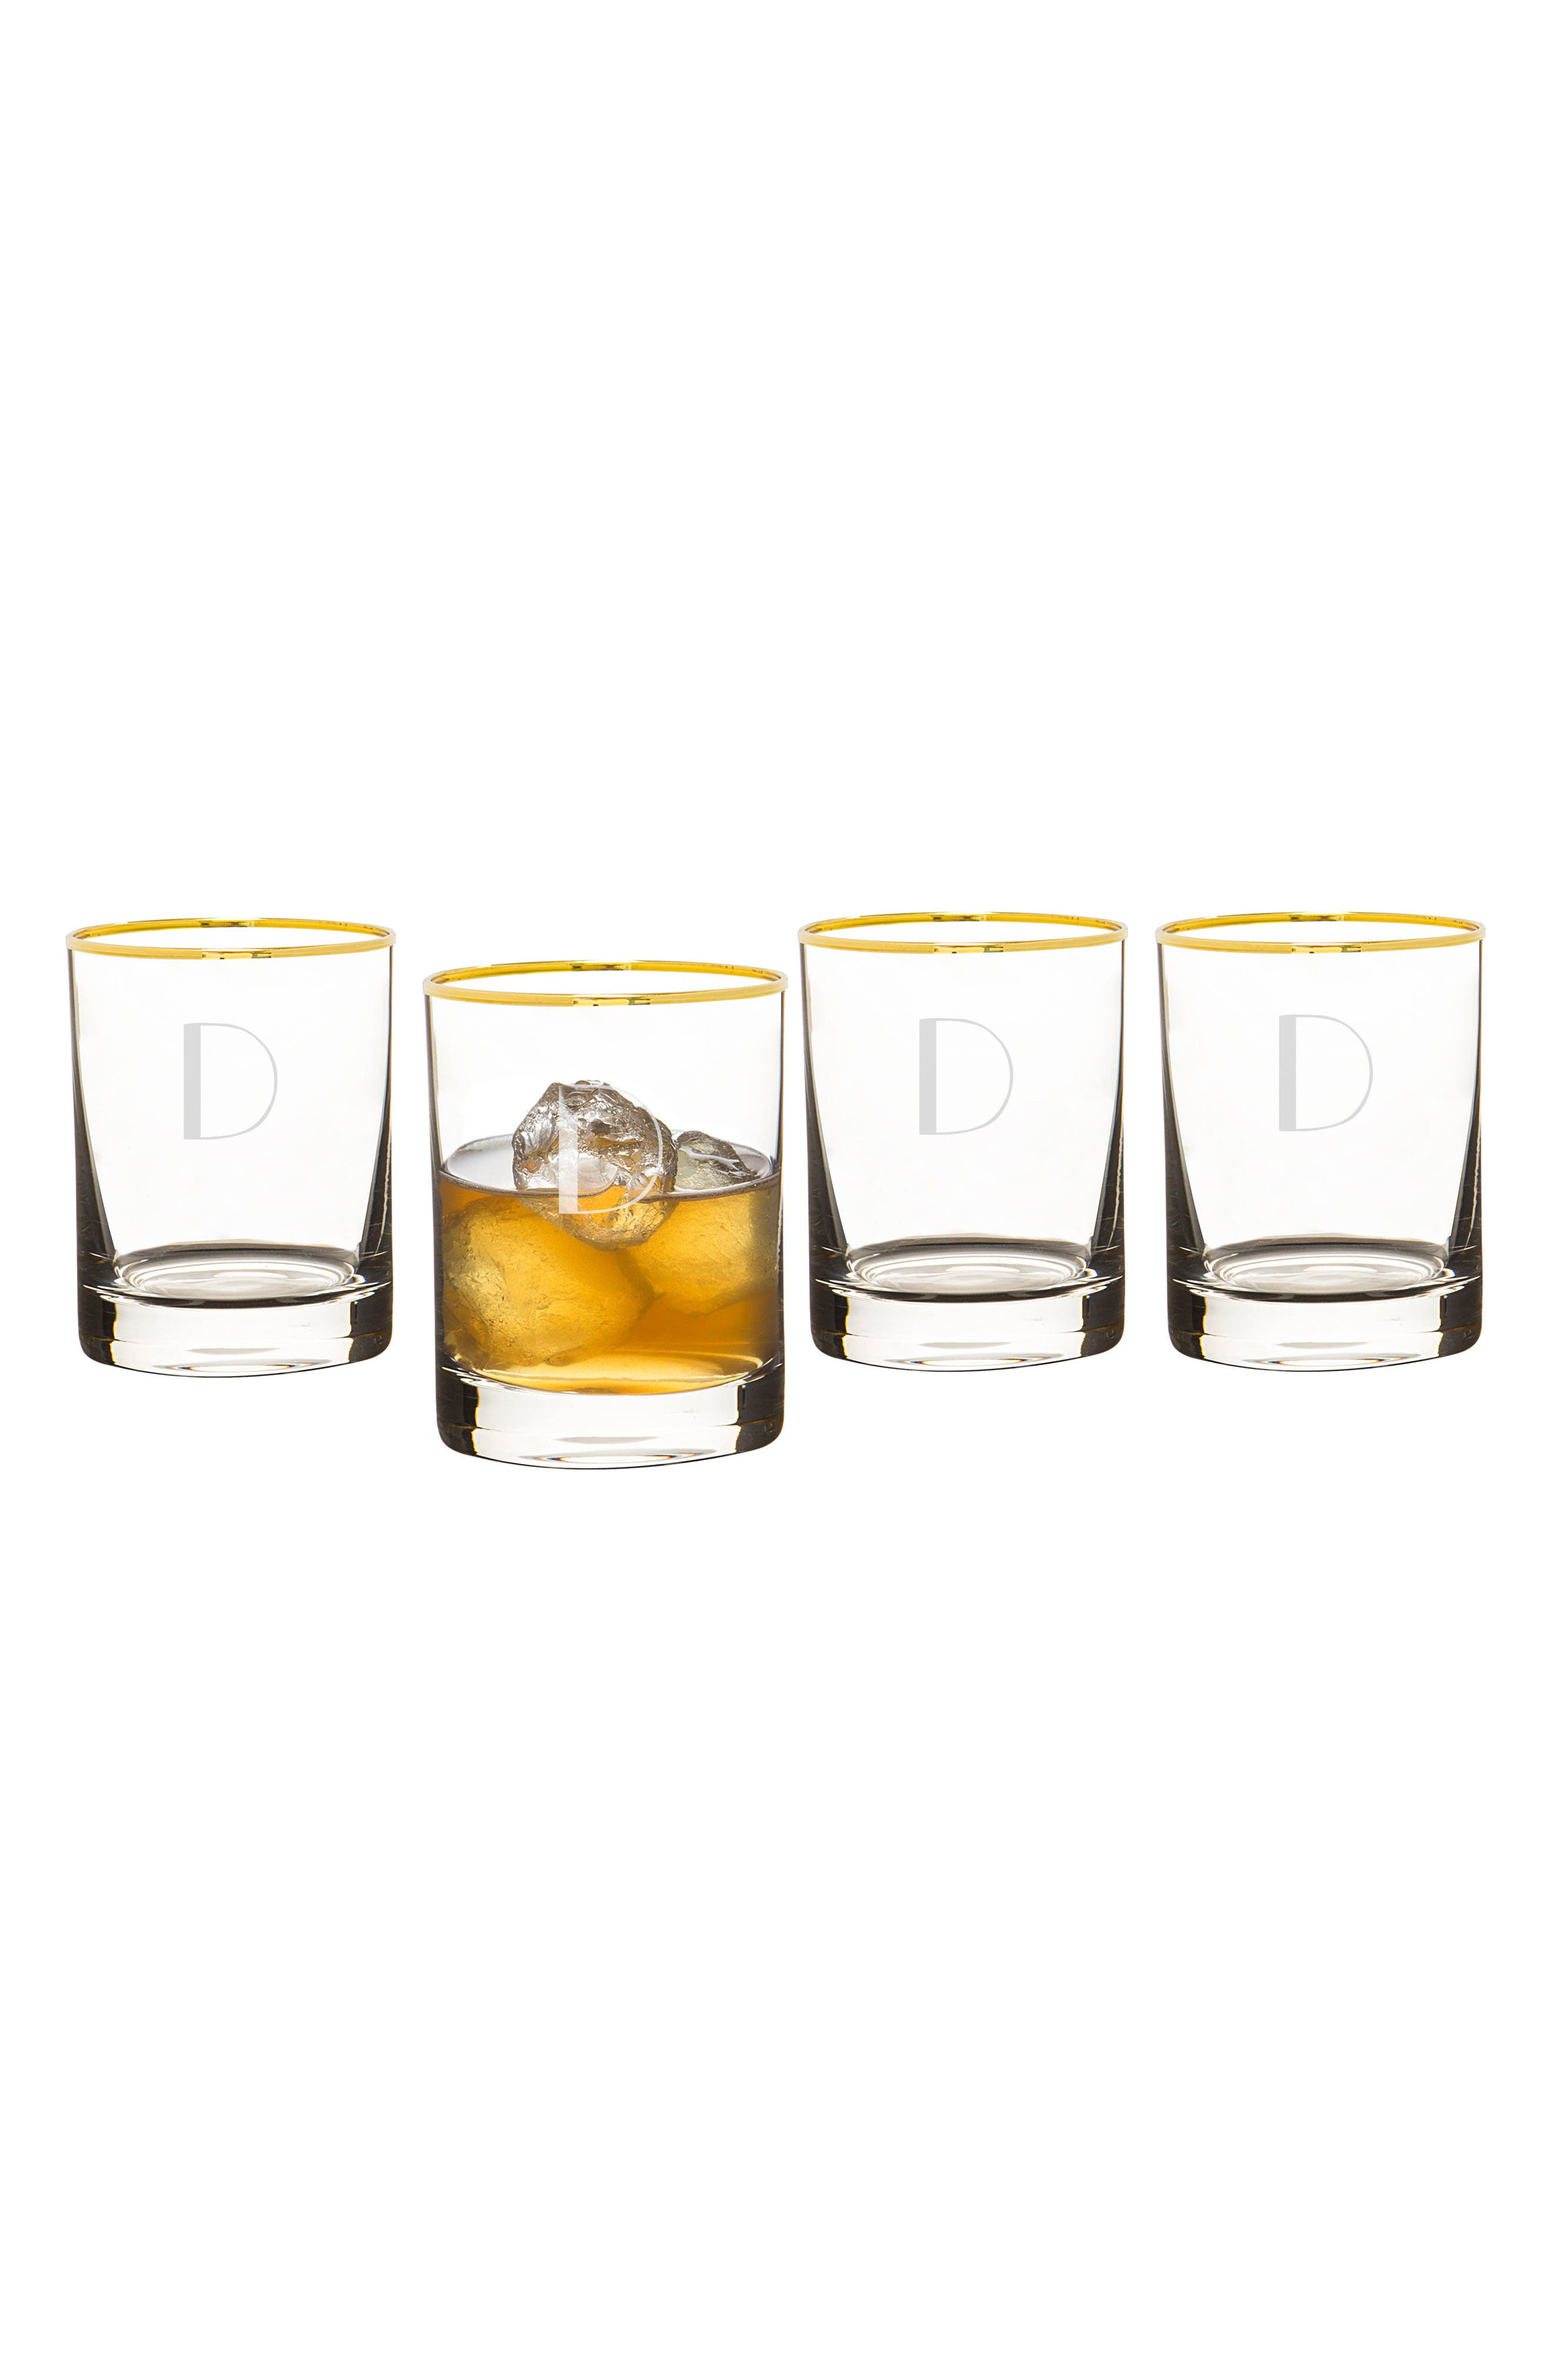 Monogram Set of 4 Double Old Fashioned Glasses,                             Main thumbnail 5, color,